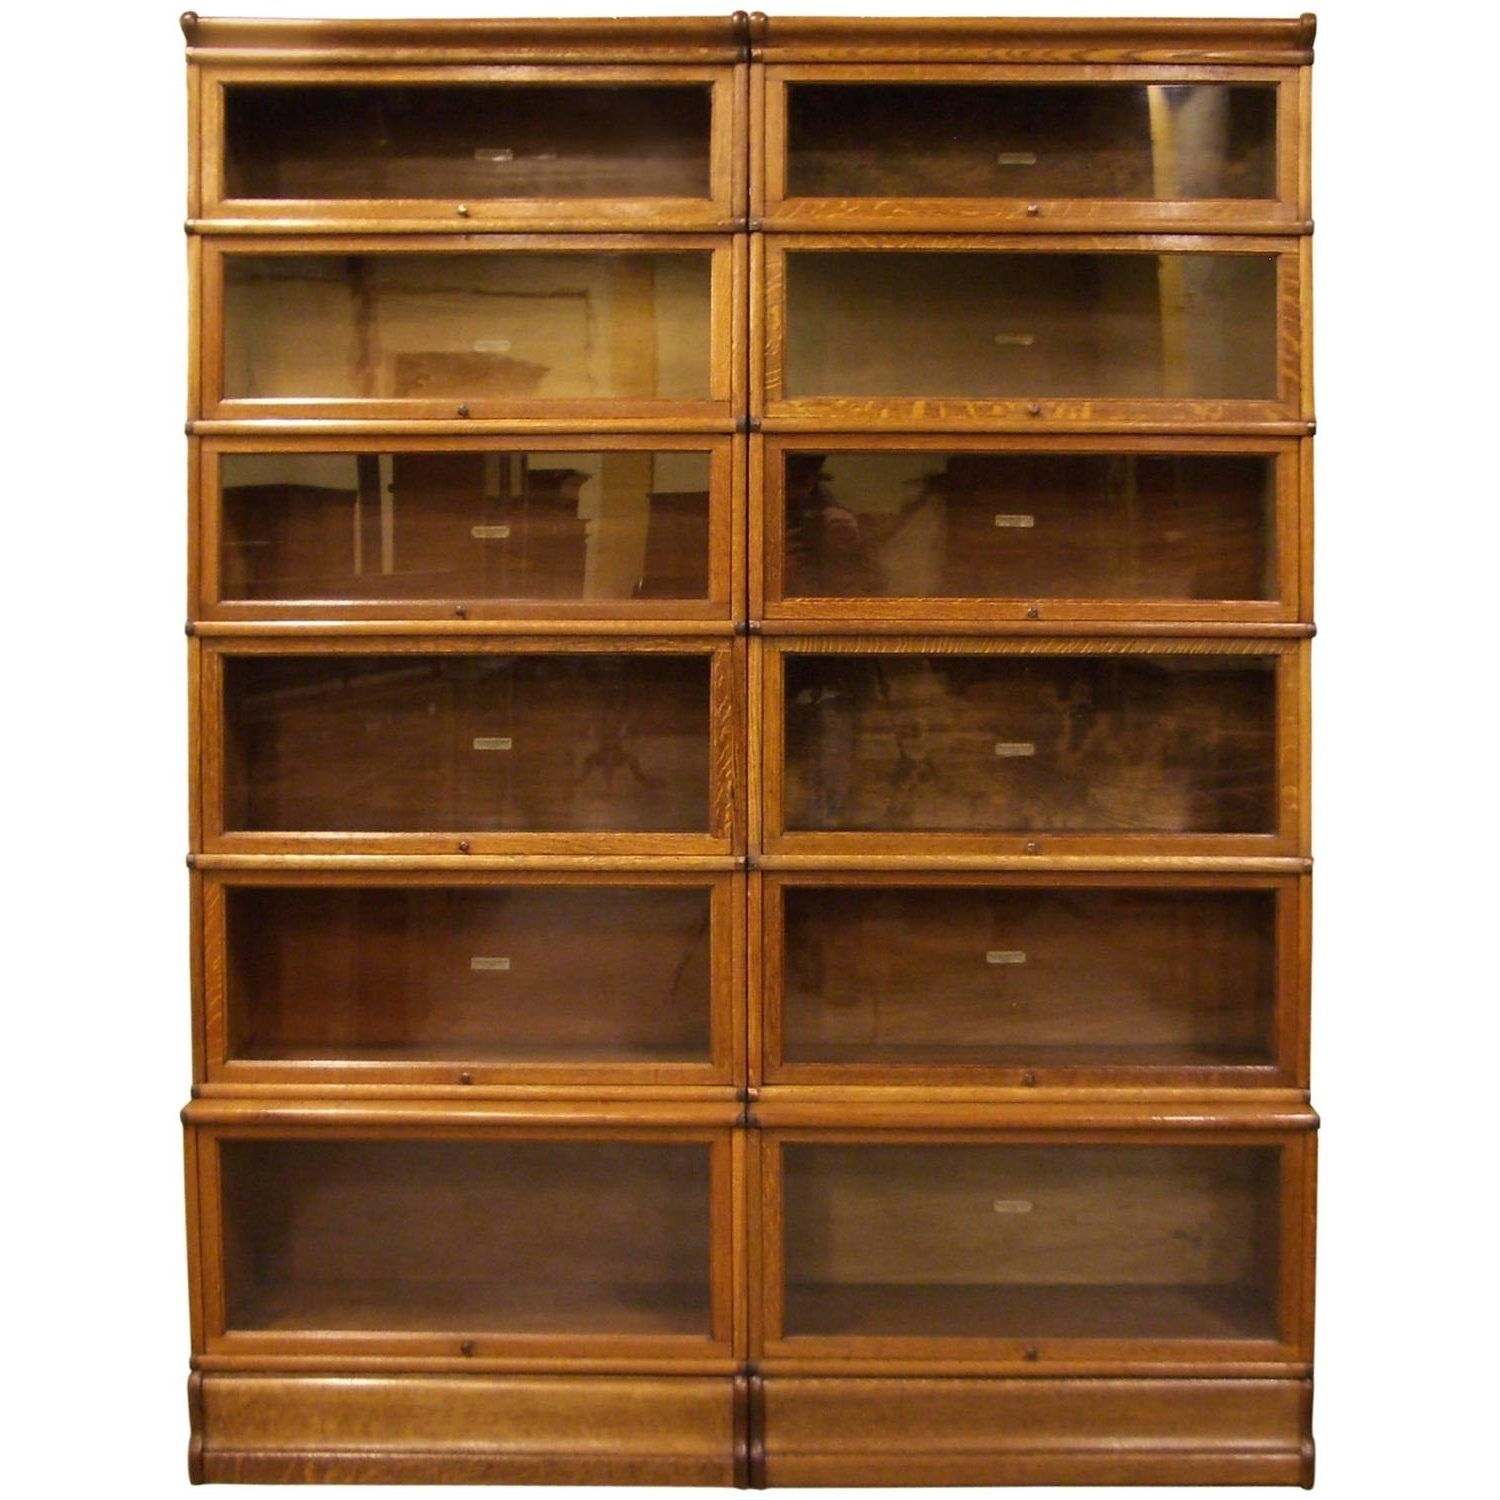 Fashionable Globe Wernicke Bookcase Oak For Sale At 1stdibs With Regard To Barrister Bookcases (View 15 of 15)